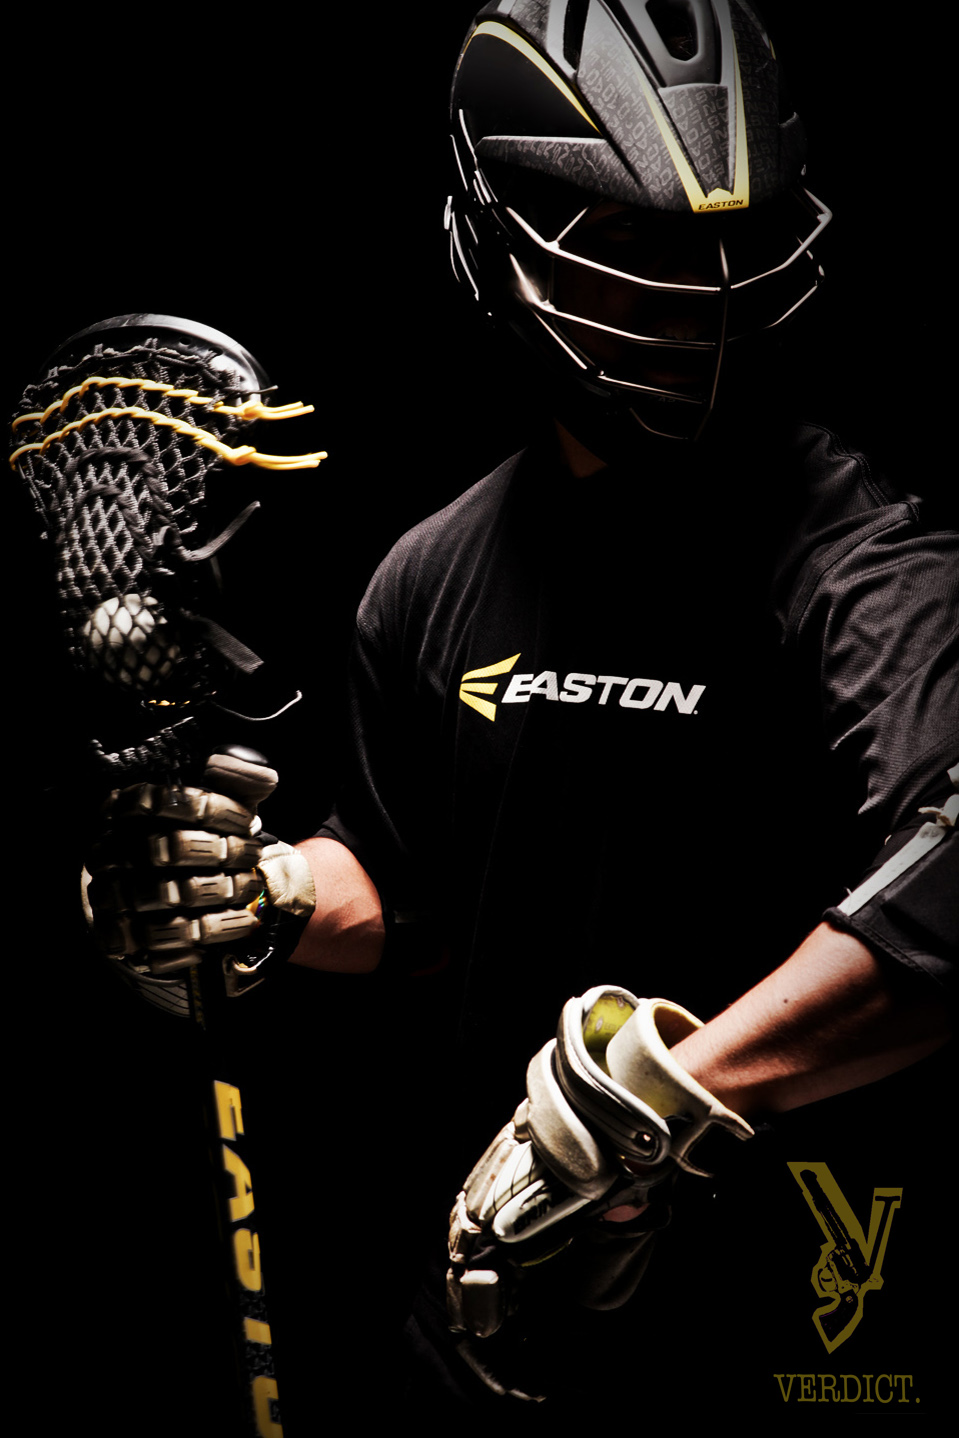 Lacrosse Wallpaper For Iphone 5 Wallpapersafari